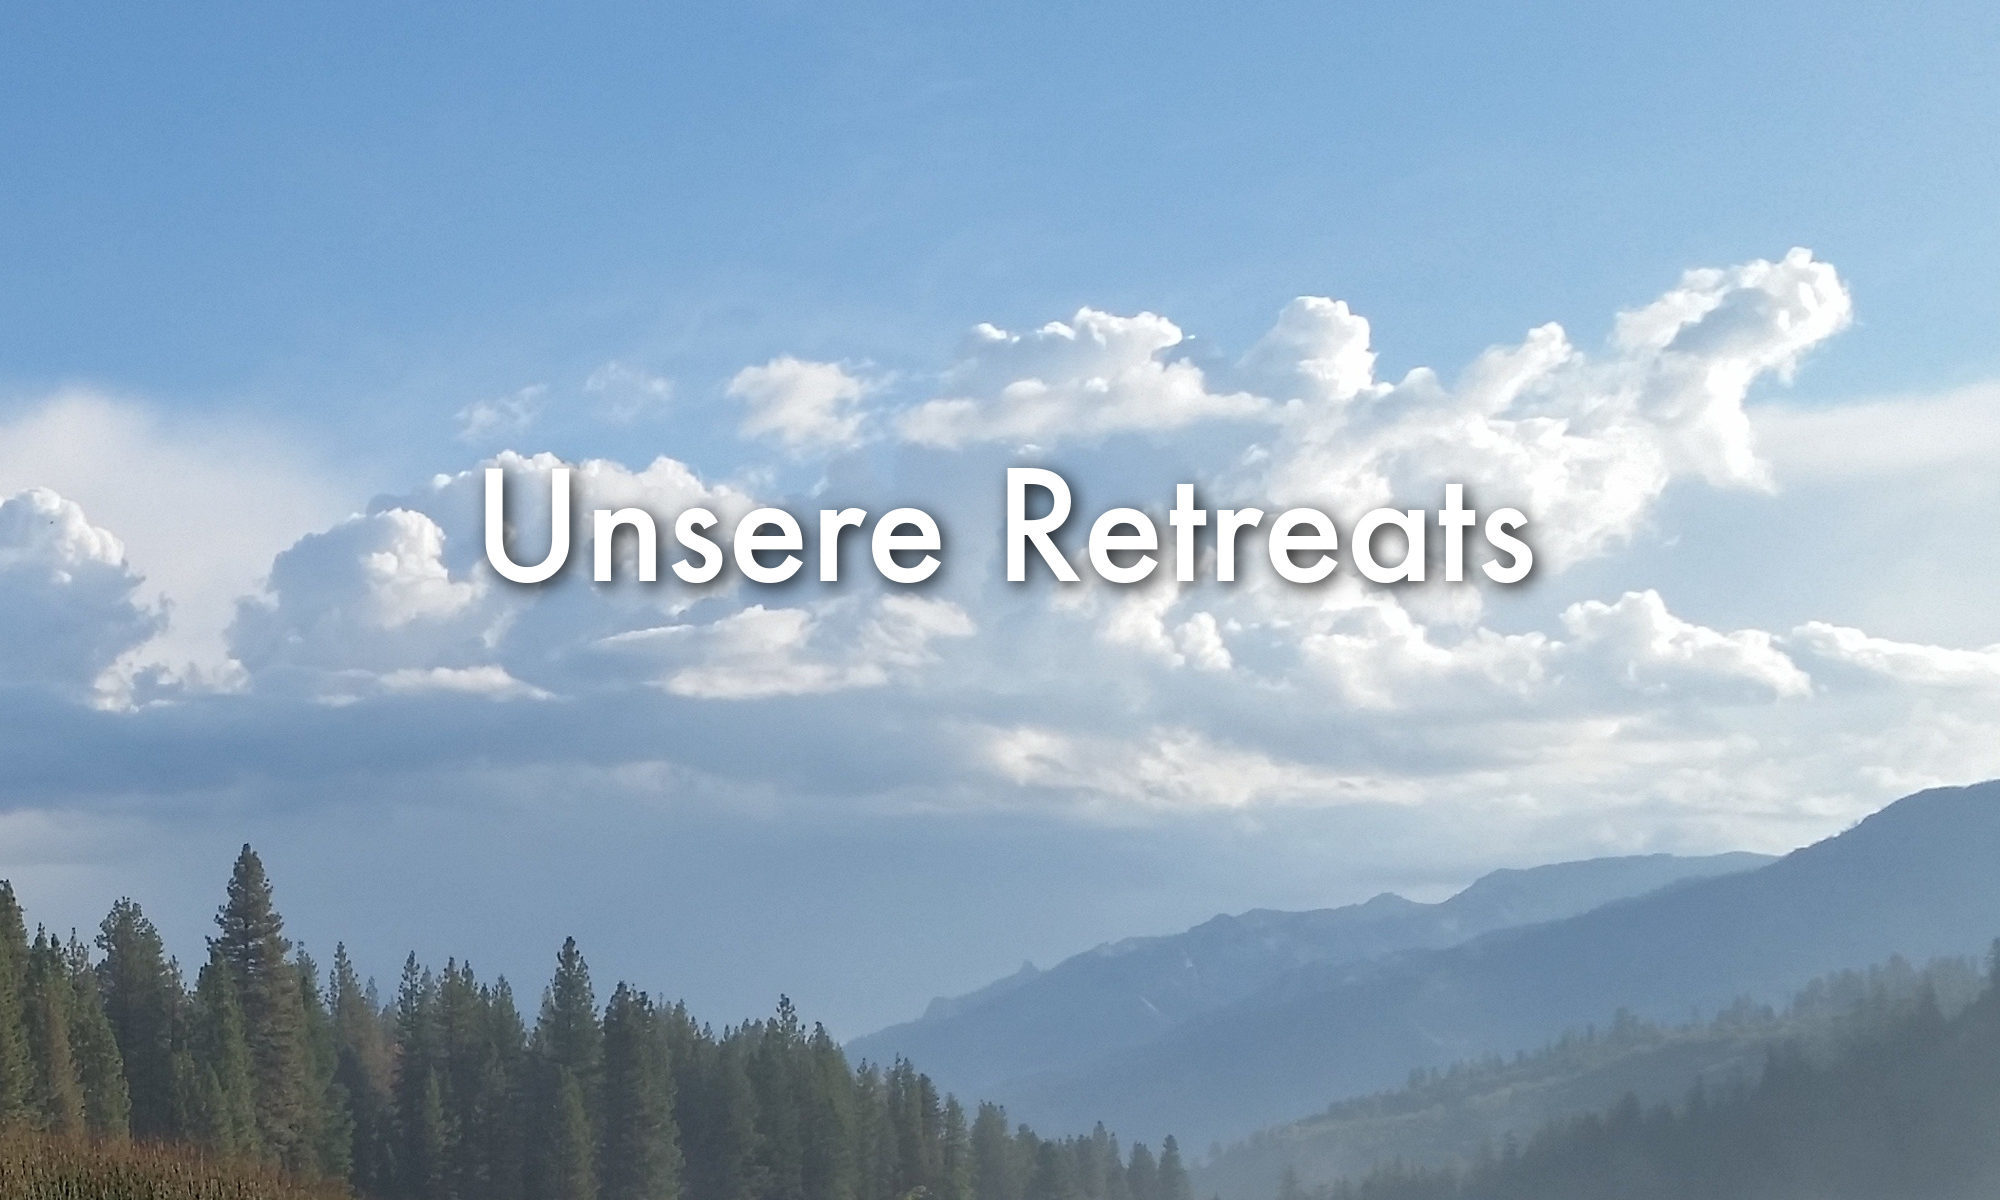 Unsere Retreats